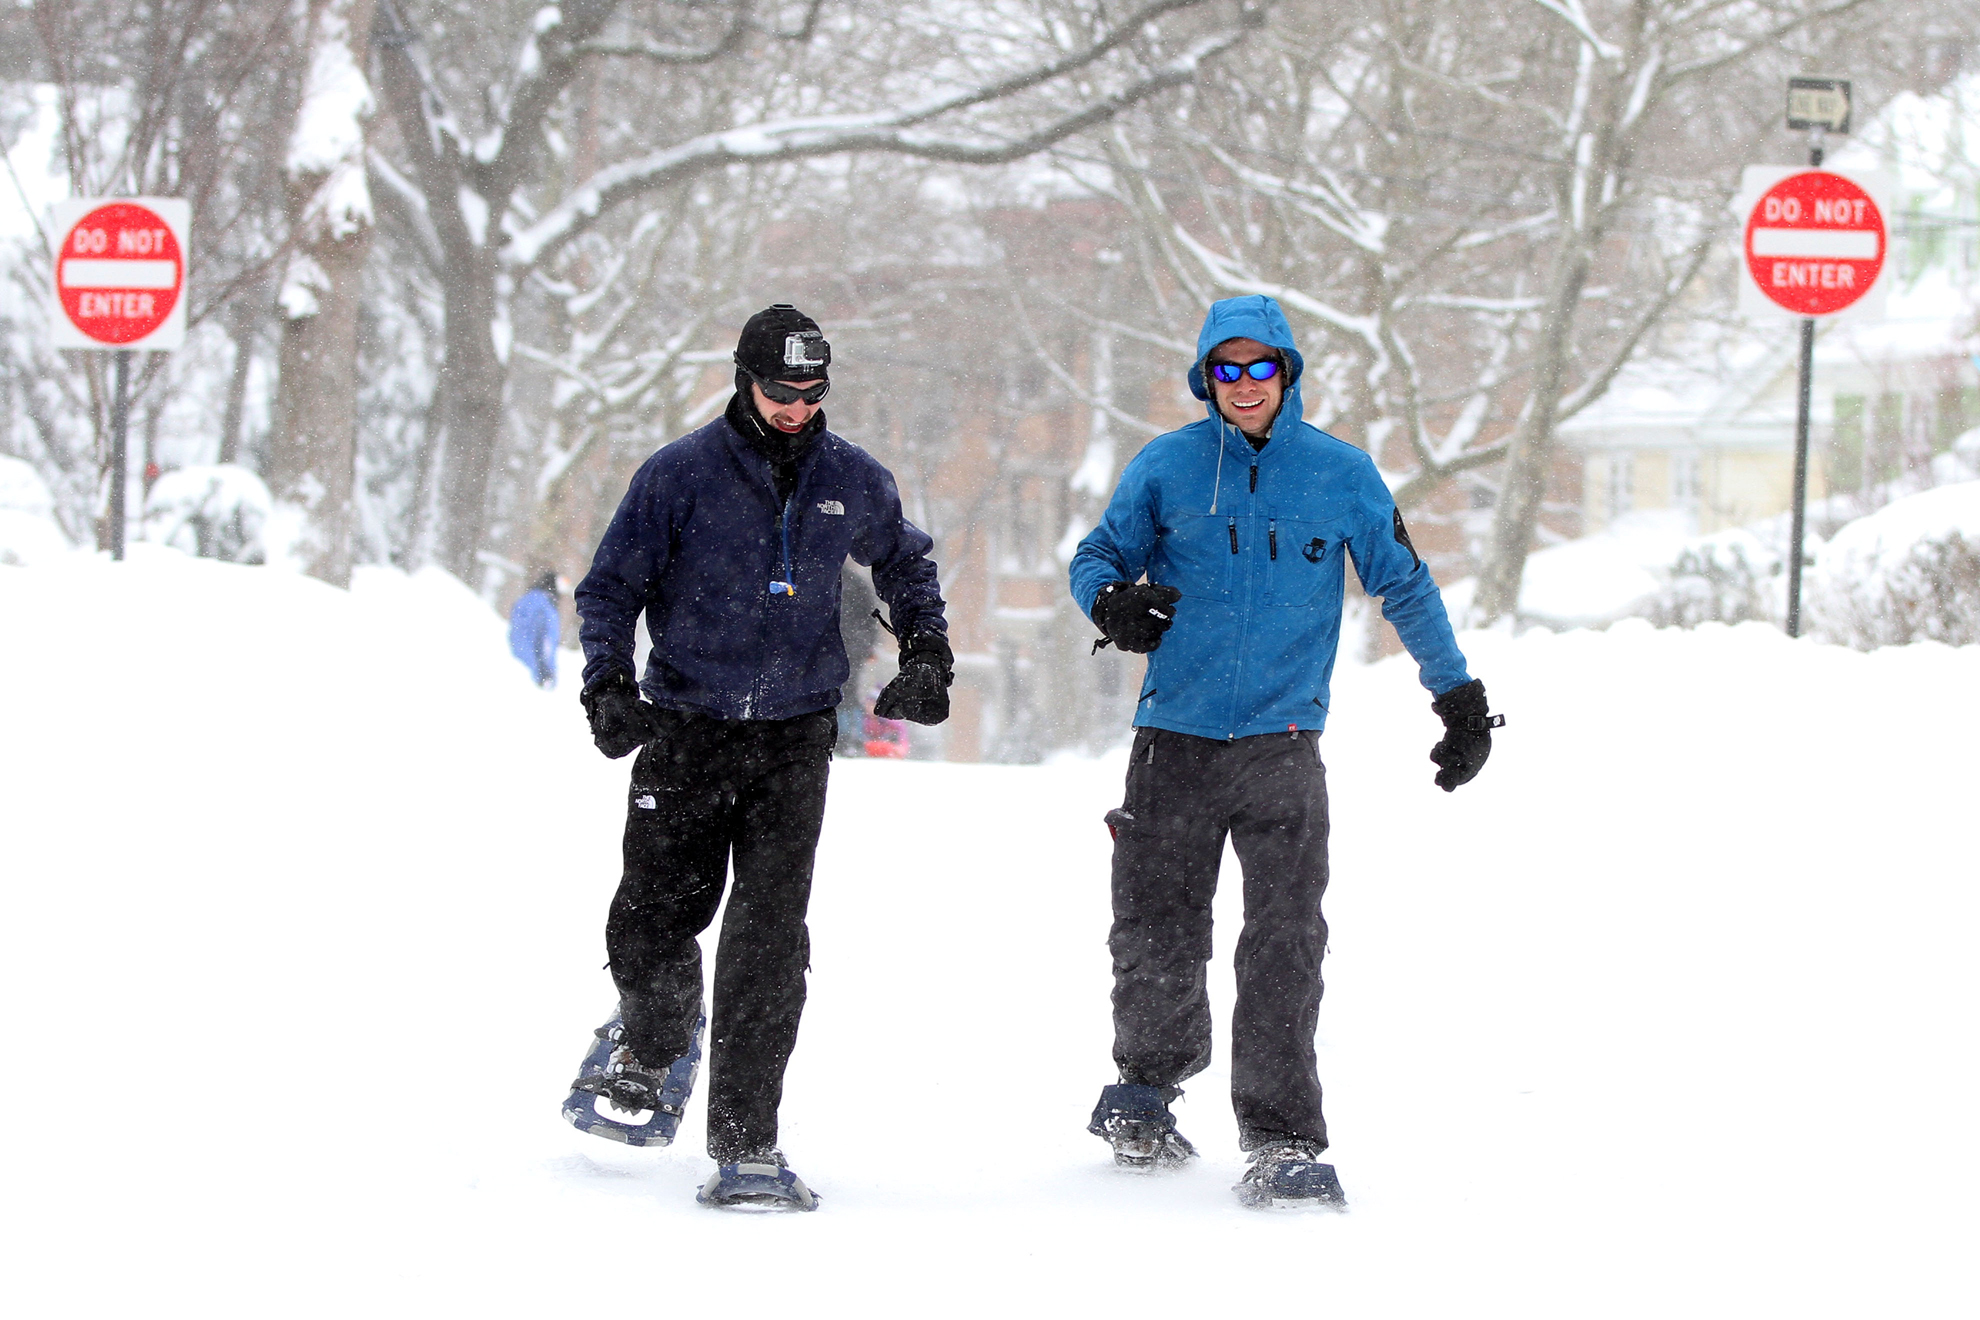 Image: Brookline residents Thomas Battey (left) and Vincent Valant walk with snowshoes down Fuller Street on Saturday after a winter storm passed through the Northeast, leaving over 20 inches of snow in the city of Boston. (Photo by Billie Weiss/BU News Service)